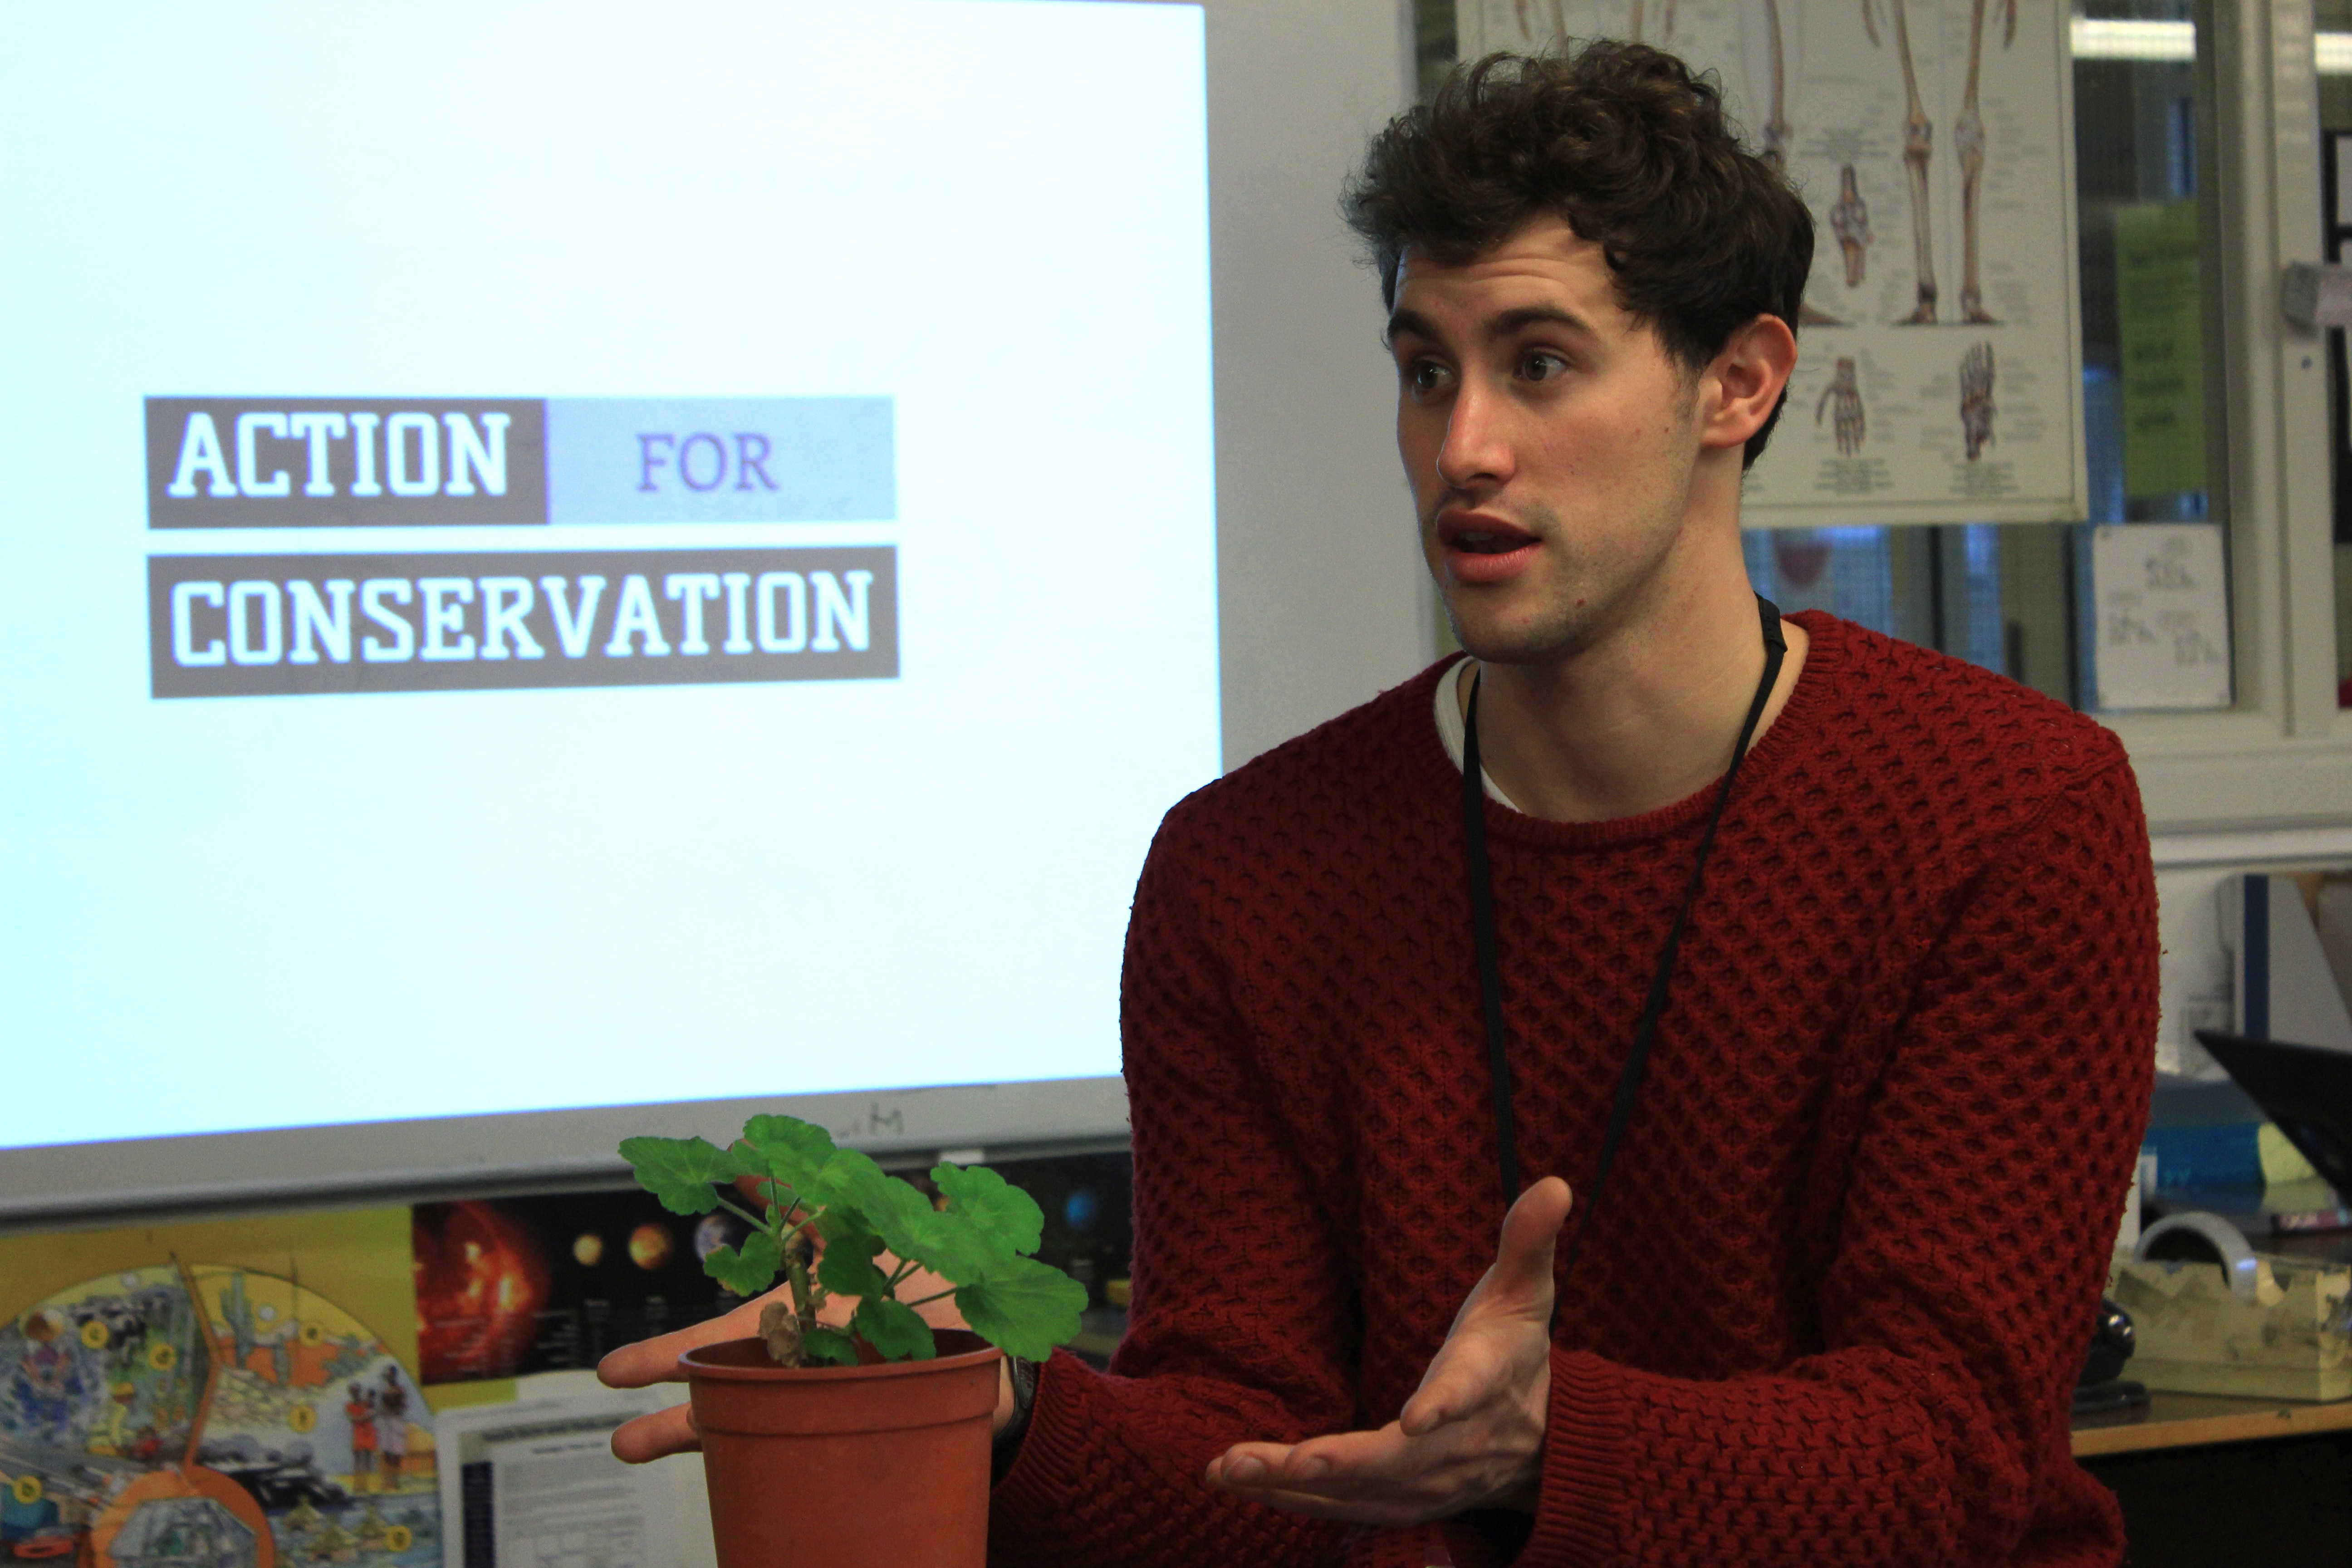 Hendrikus van Hensbergen explains Action For Conservation to a class of students